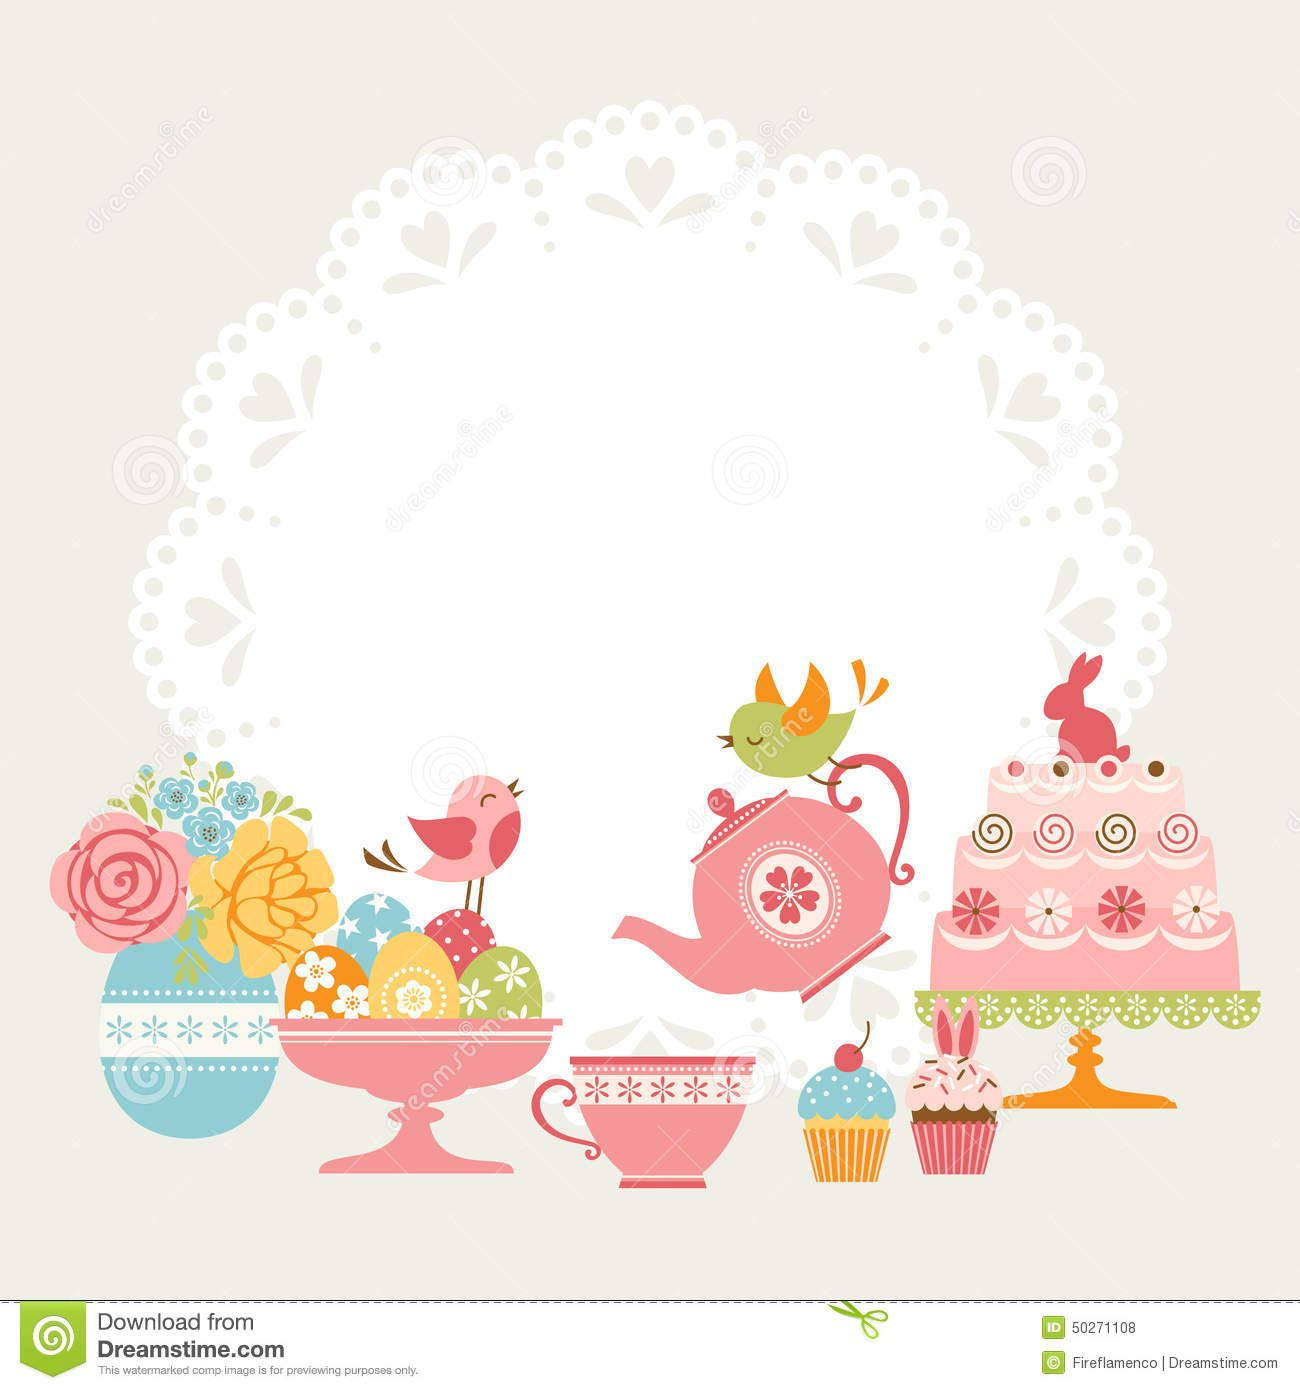 Free party invitation clipart jpg free tea borders free clip art | Cute Easter tea party invitation with ... jpg free